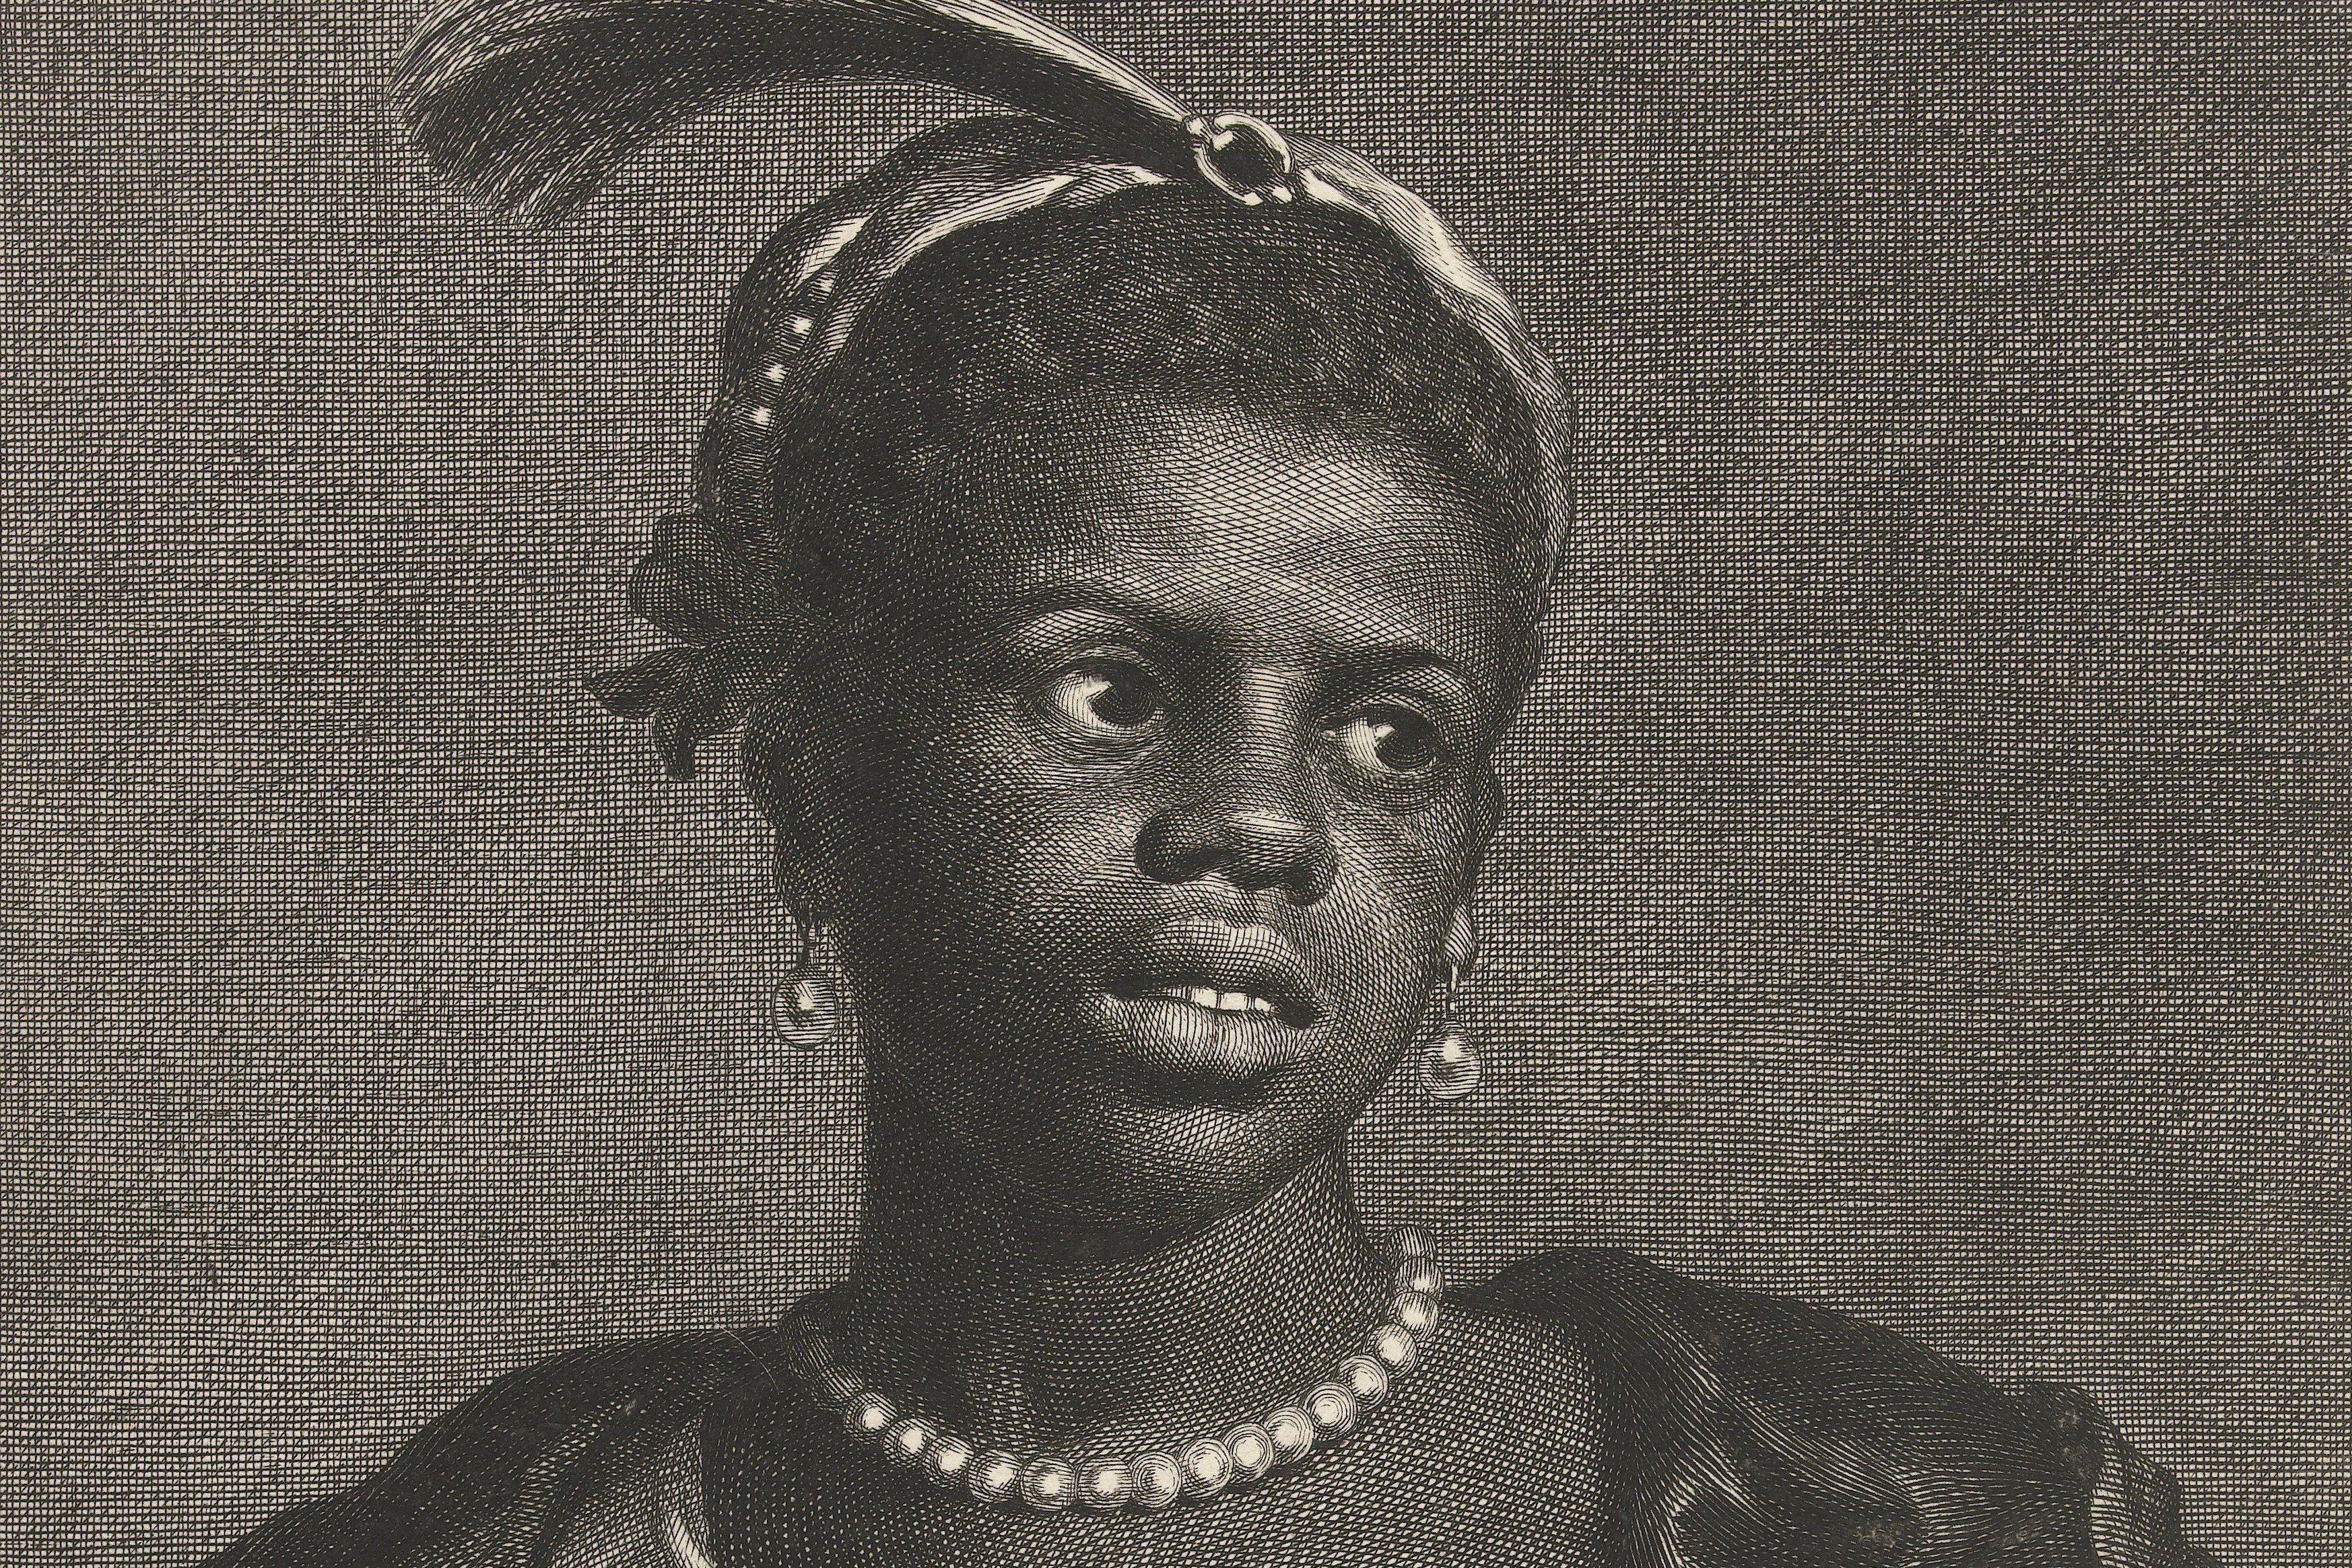 Etching of a young African woman wearing a pearl necklace